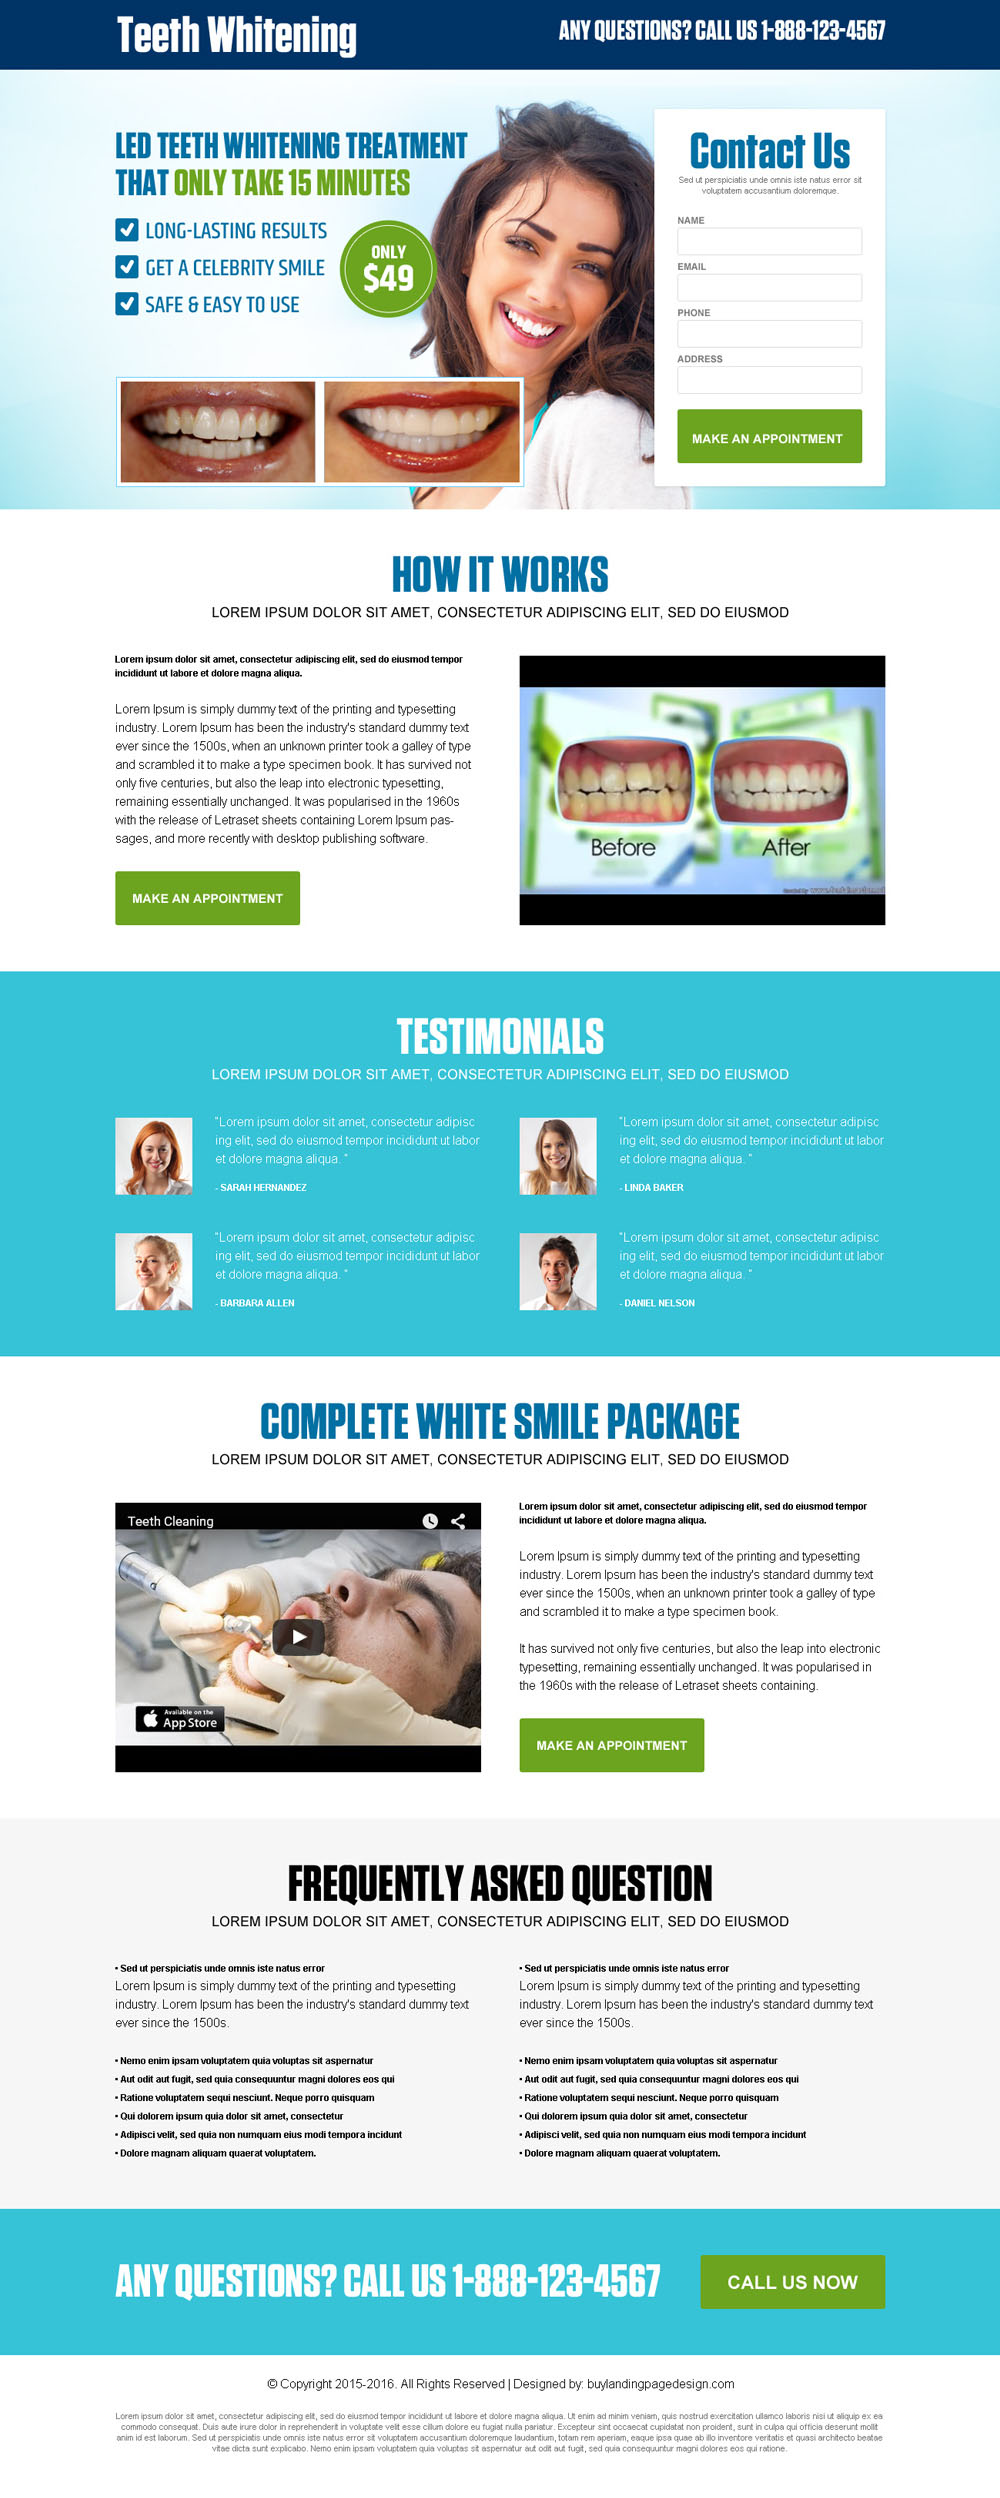 best-teeth-whitening-treatment-lead-gen-converting-landing-page-design-017